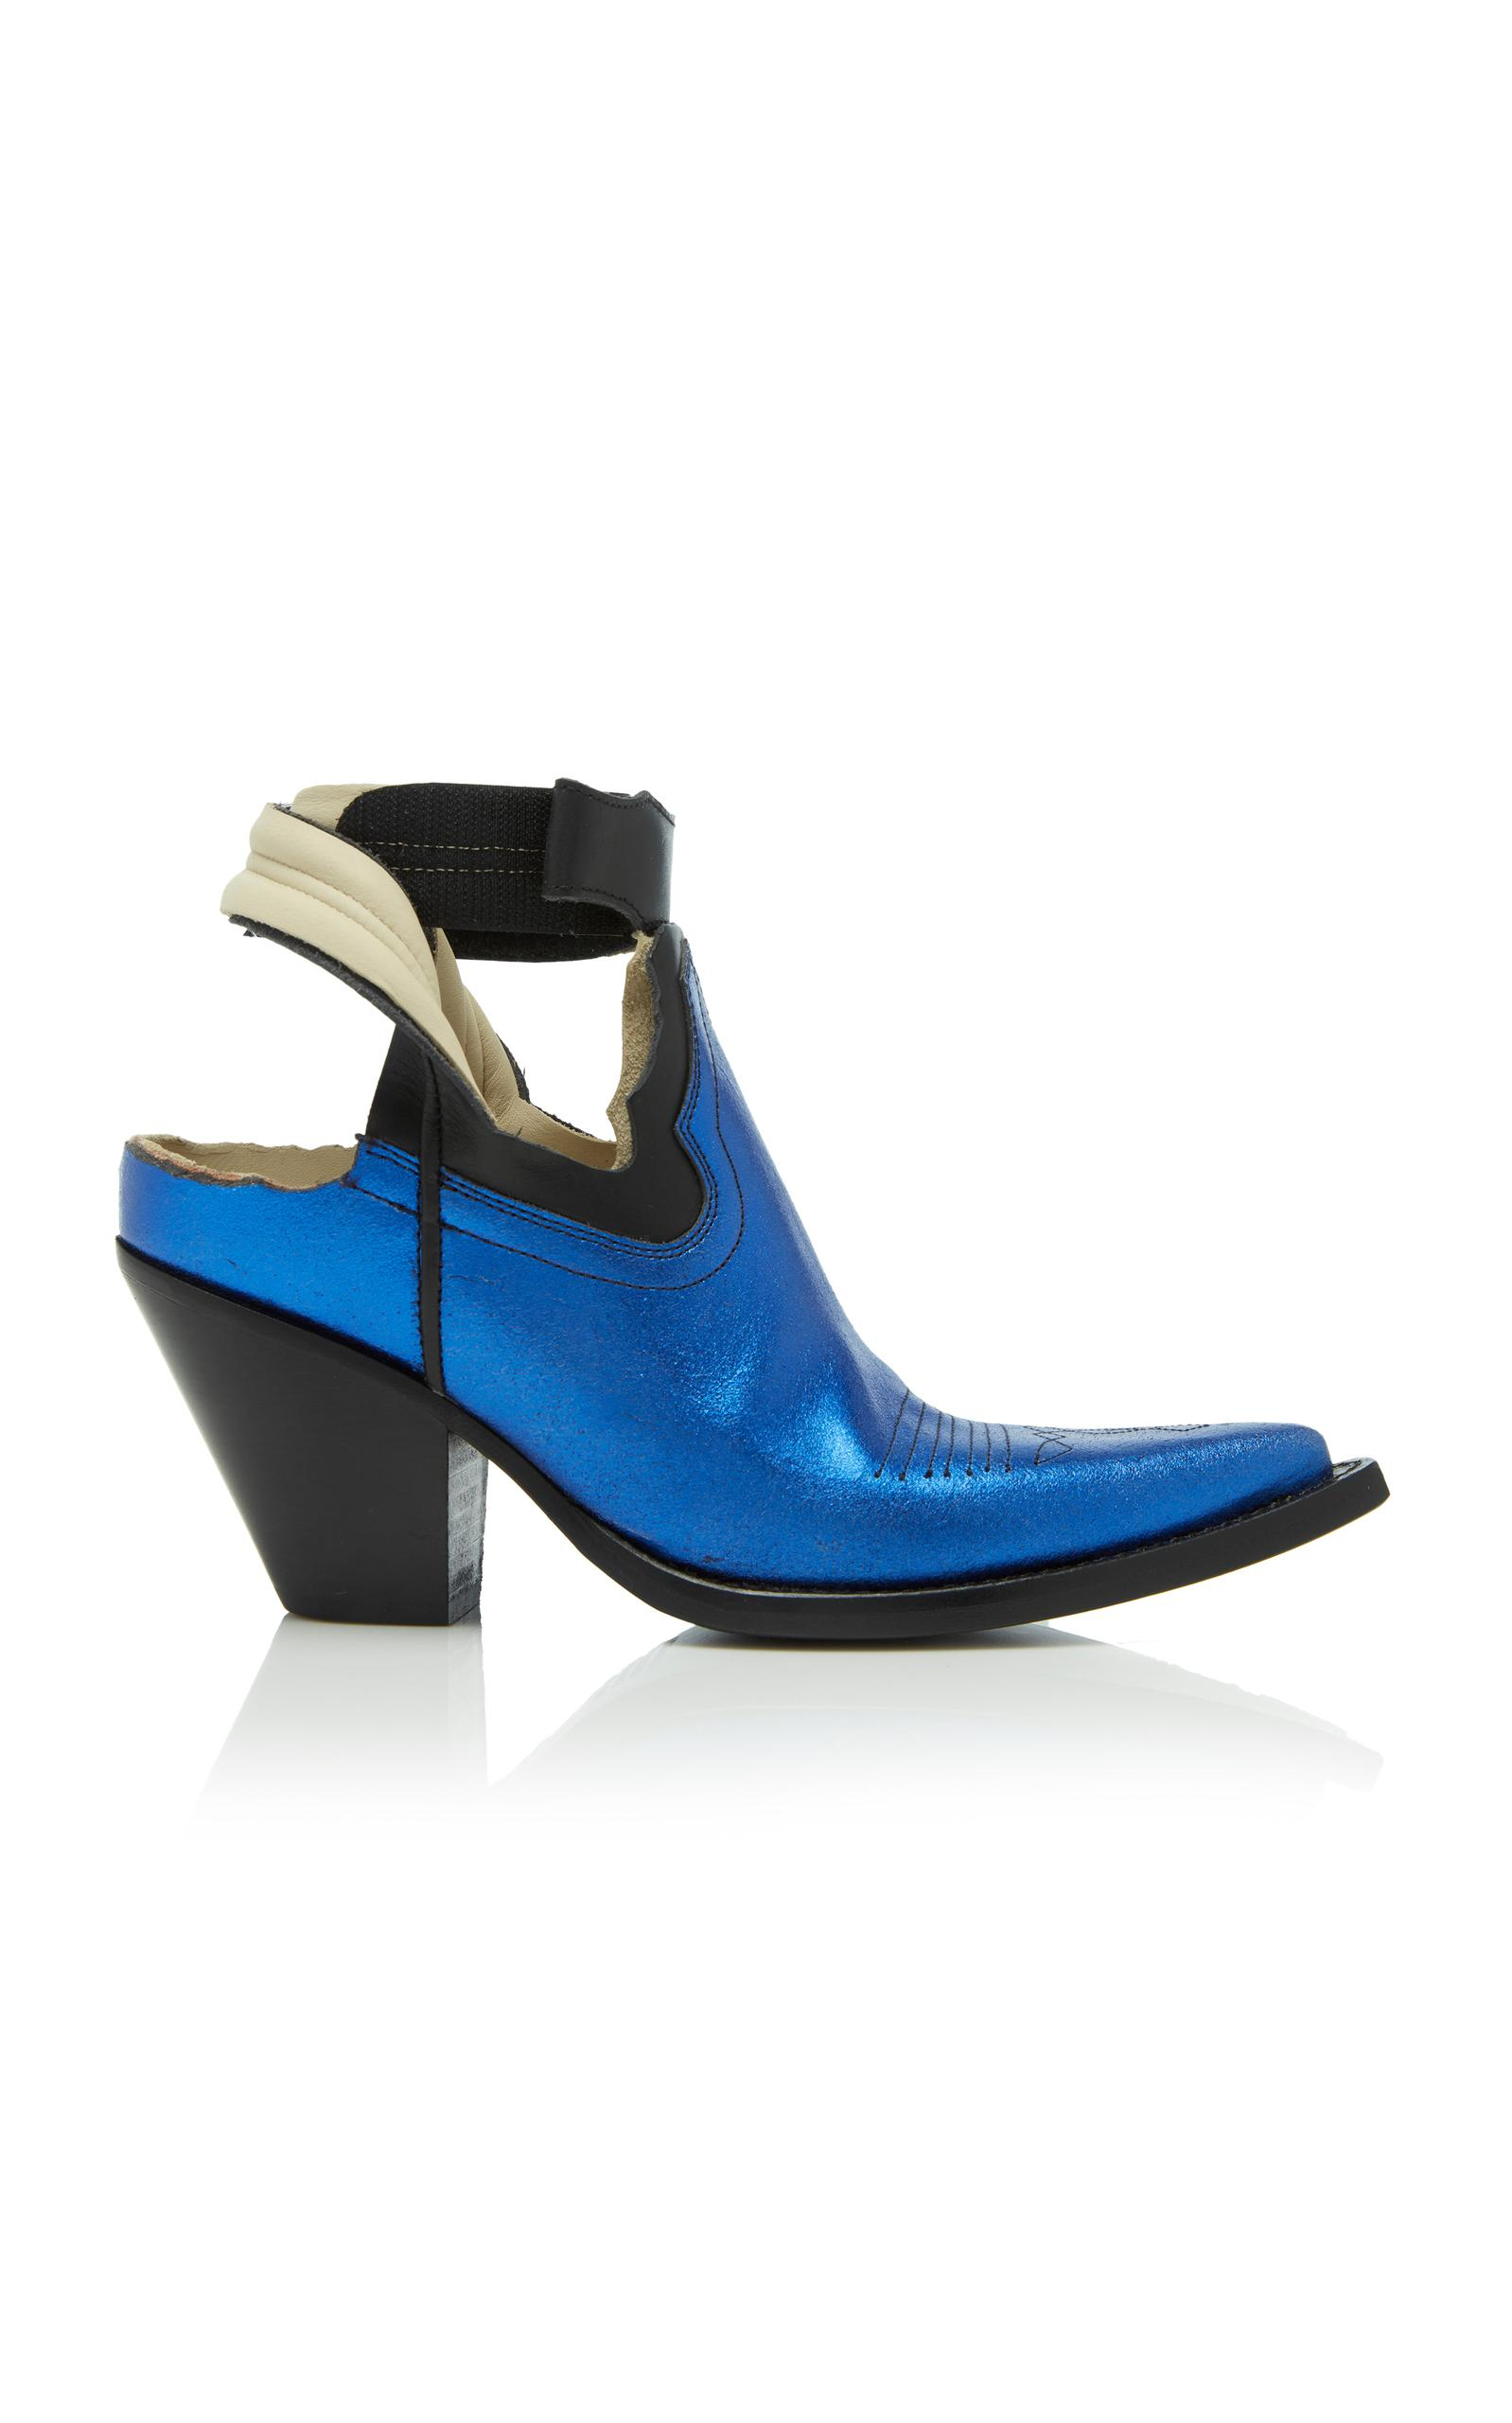 Maison Margiela Low Mexas Boot In Blue